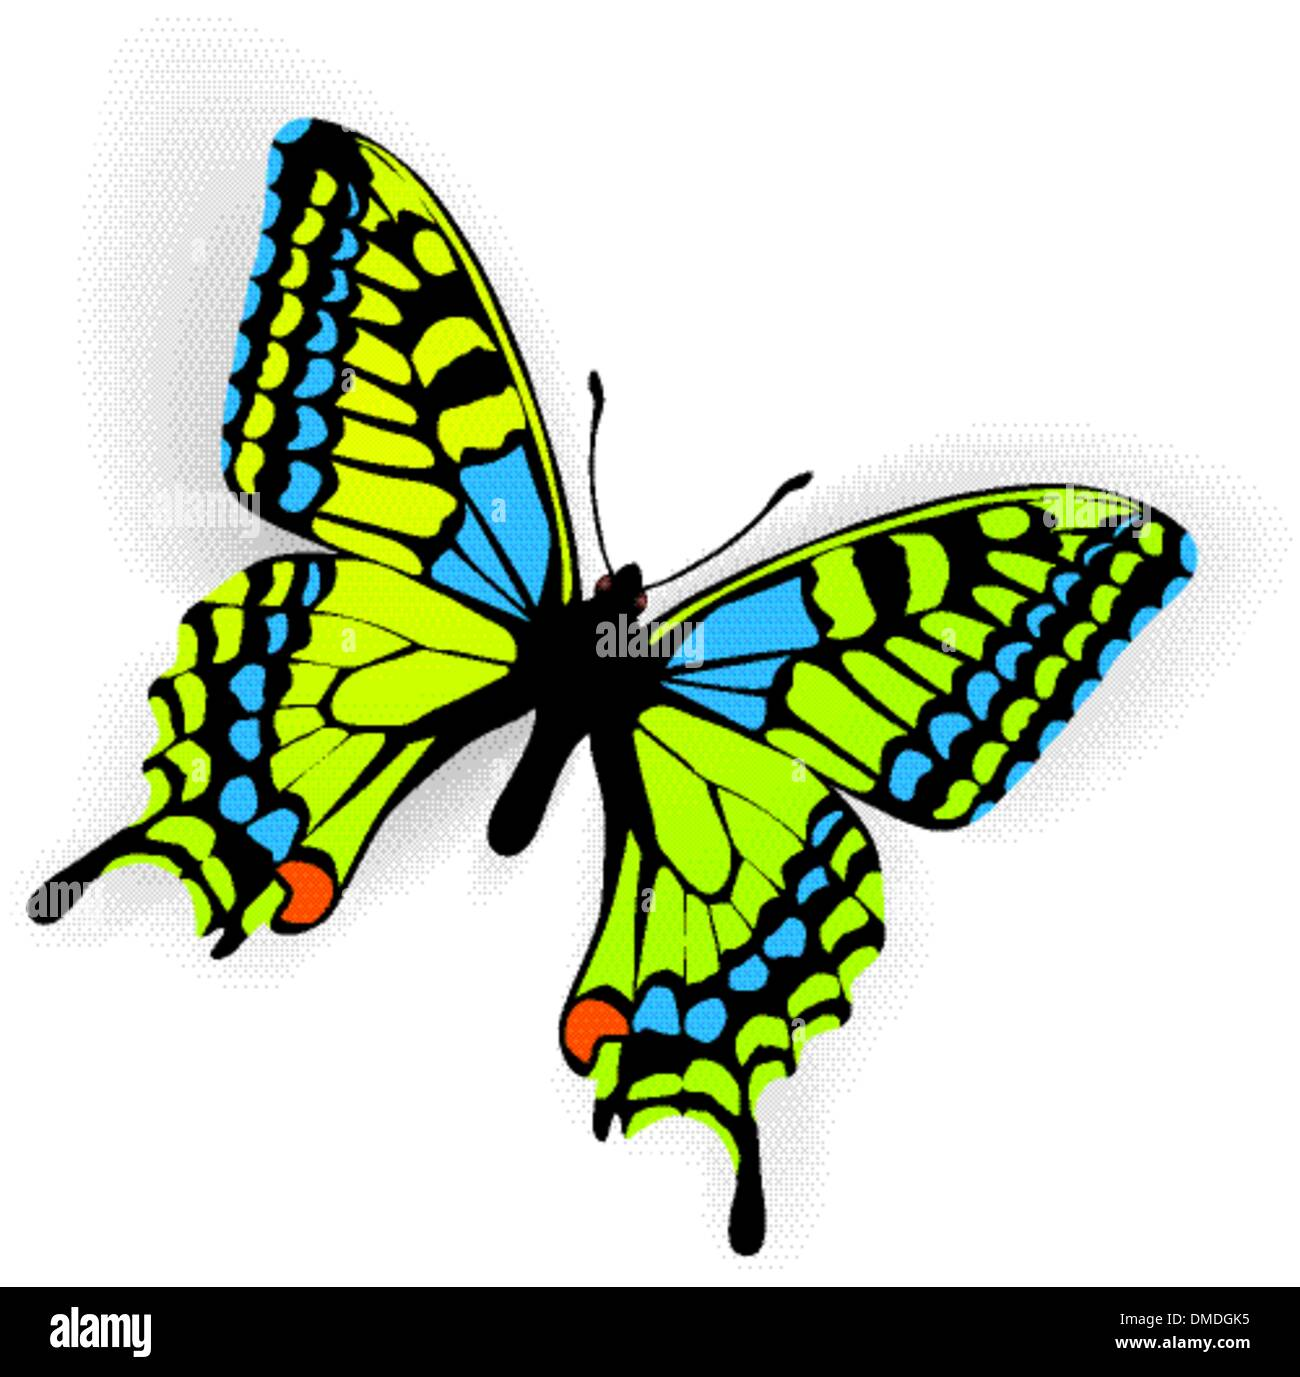 Butterfly Clip Art High Resolution Stock Photography And Images Alamy